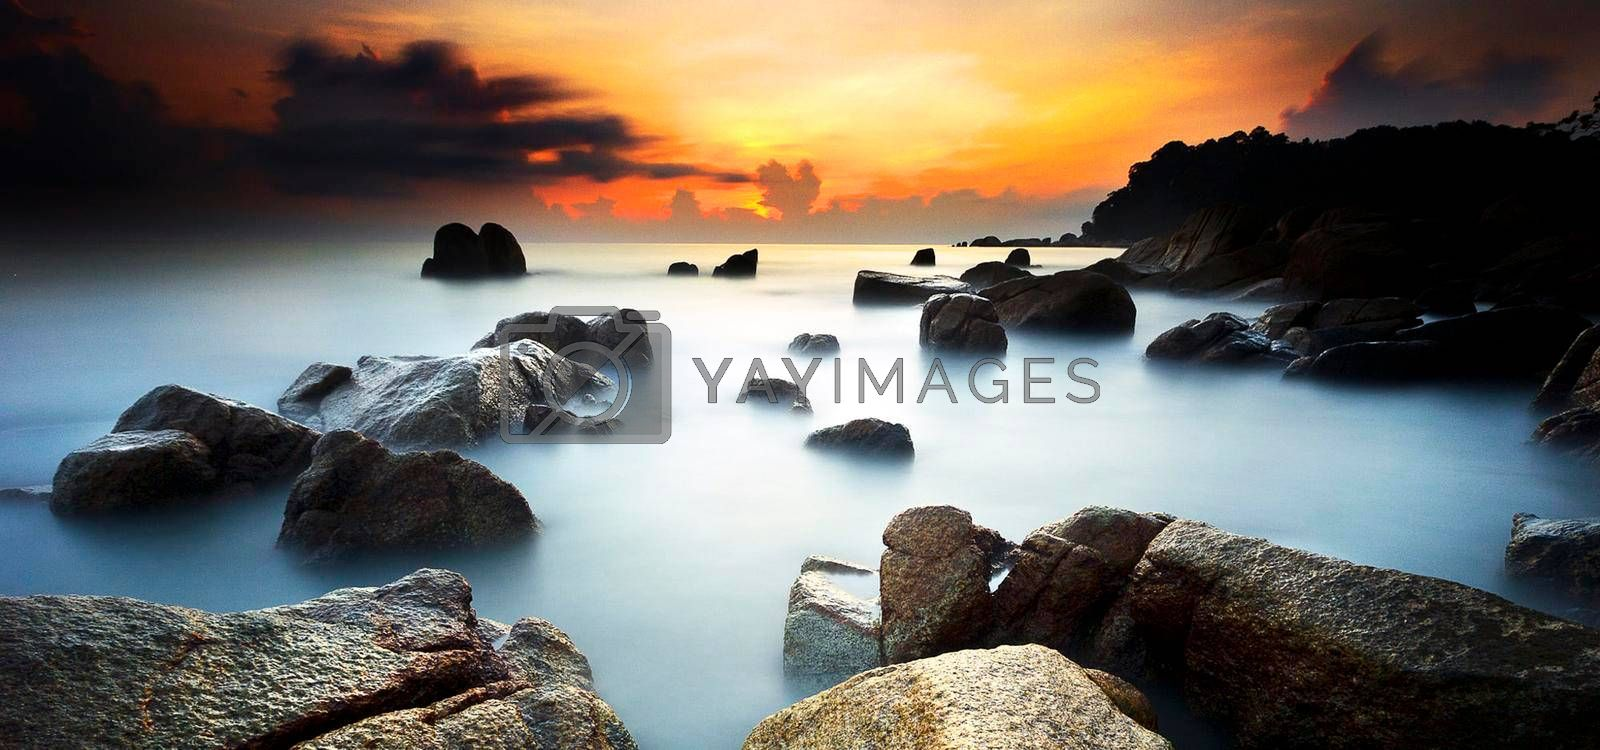 Malaysia pictures